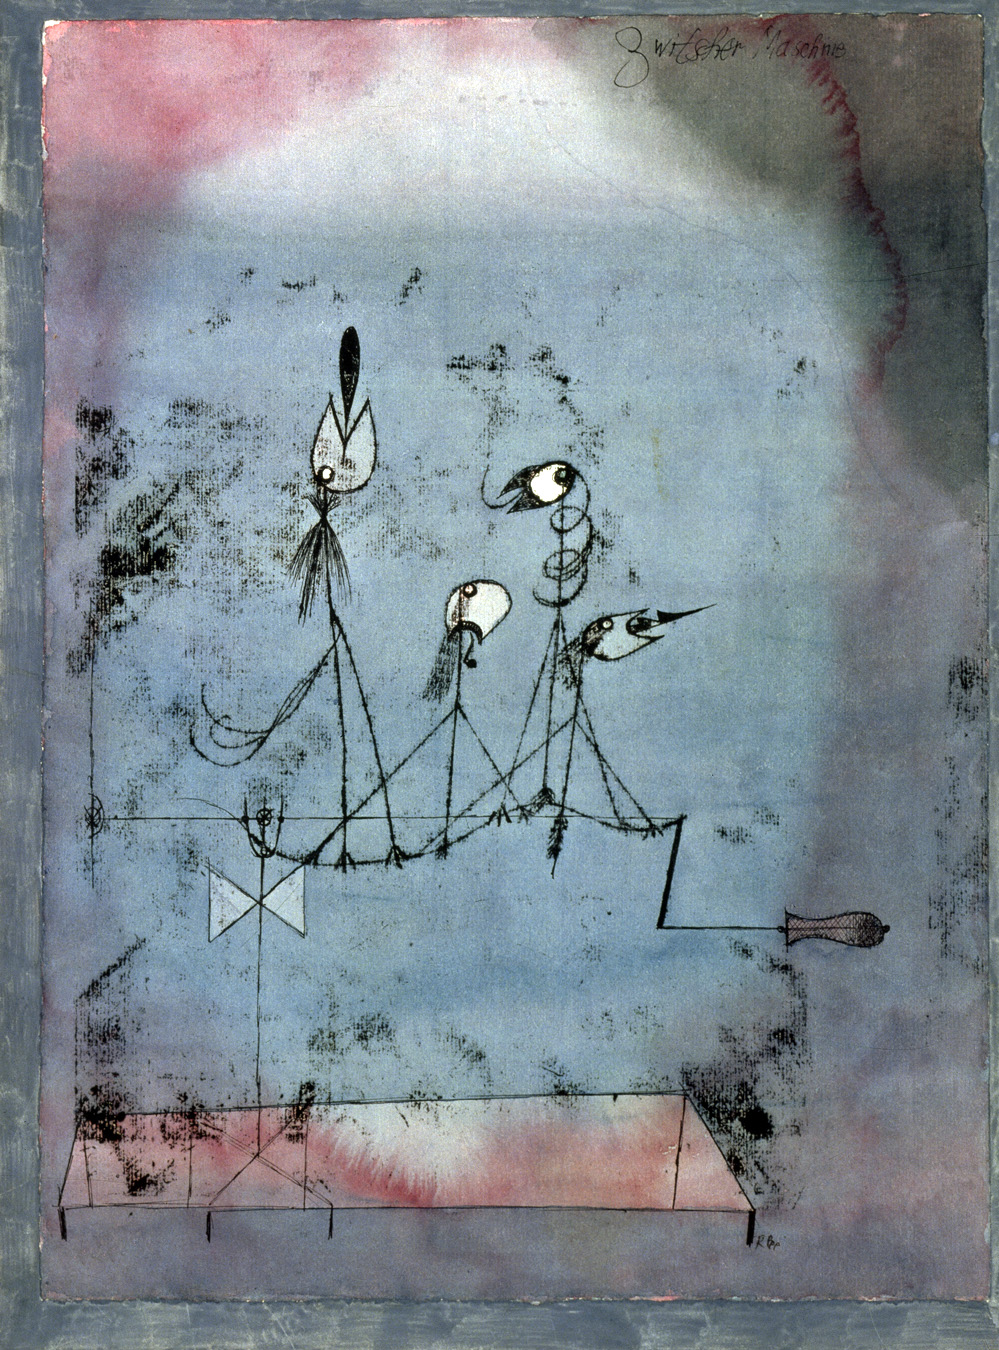 3. Twittering Machine, by Paul Klee, 1922. © The Museum of Modern Art, New York.